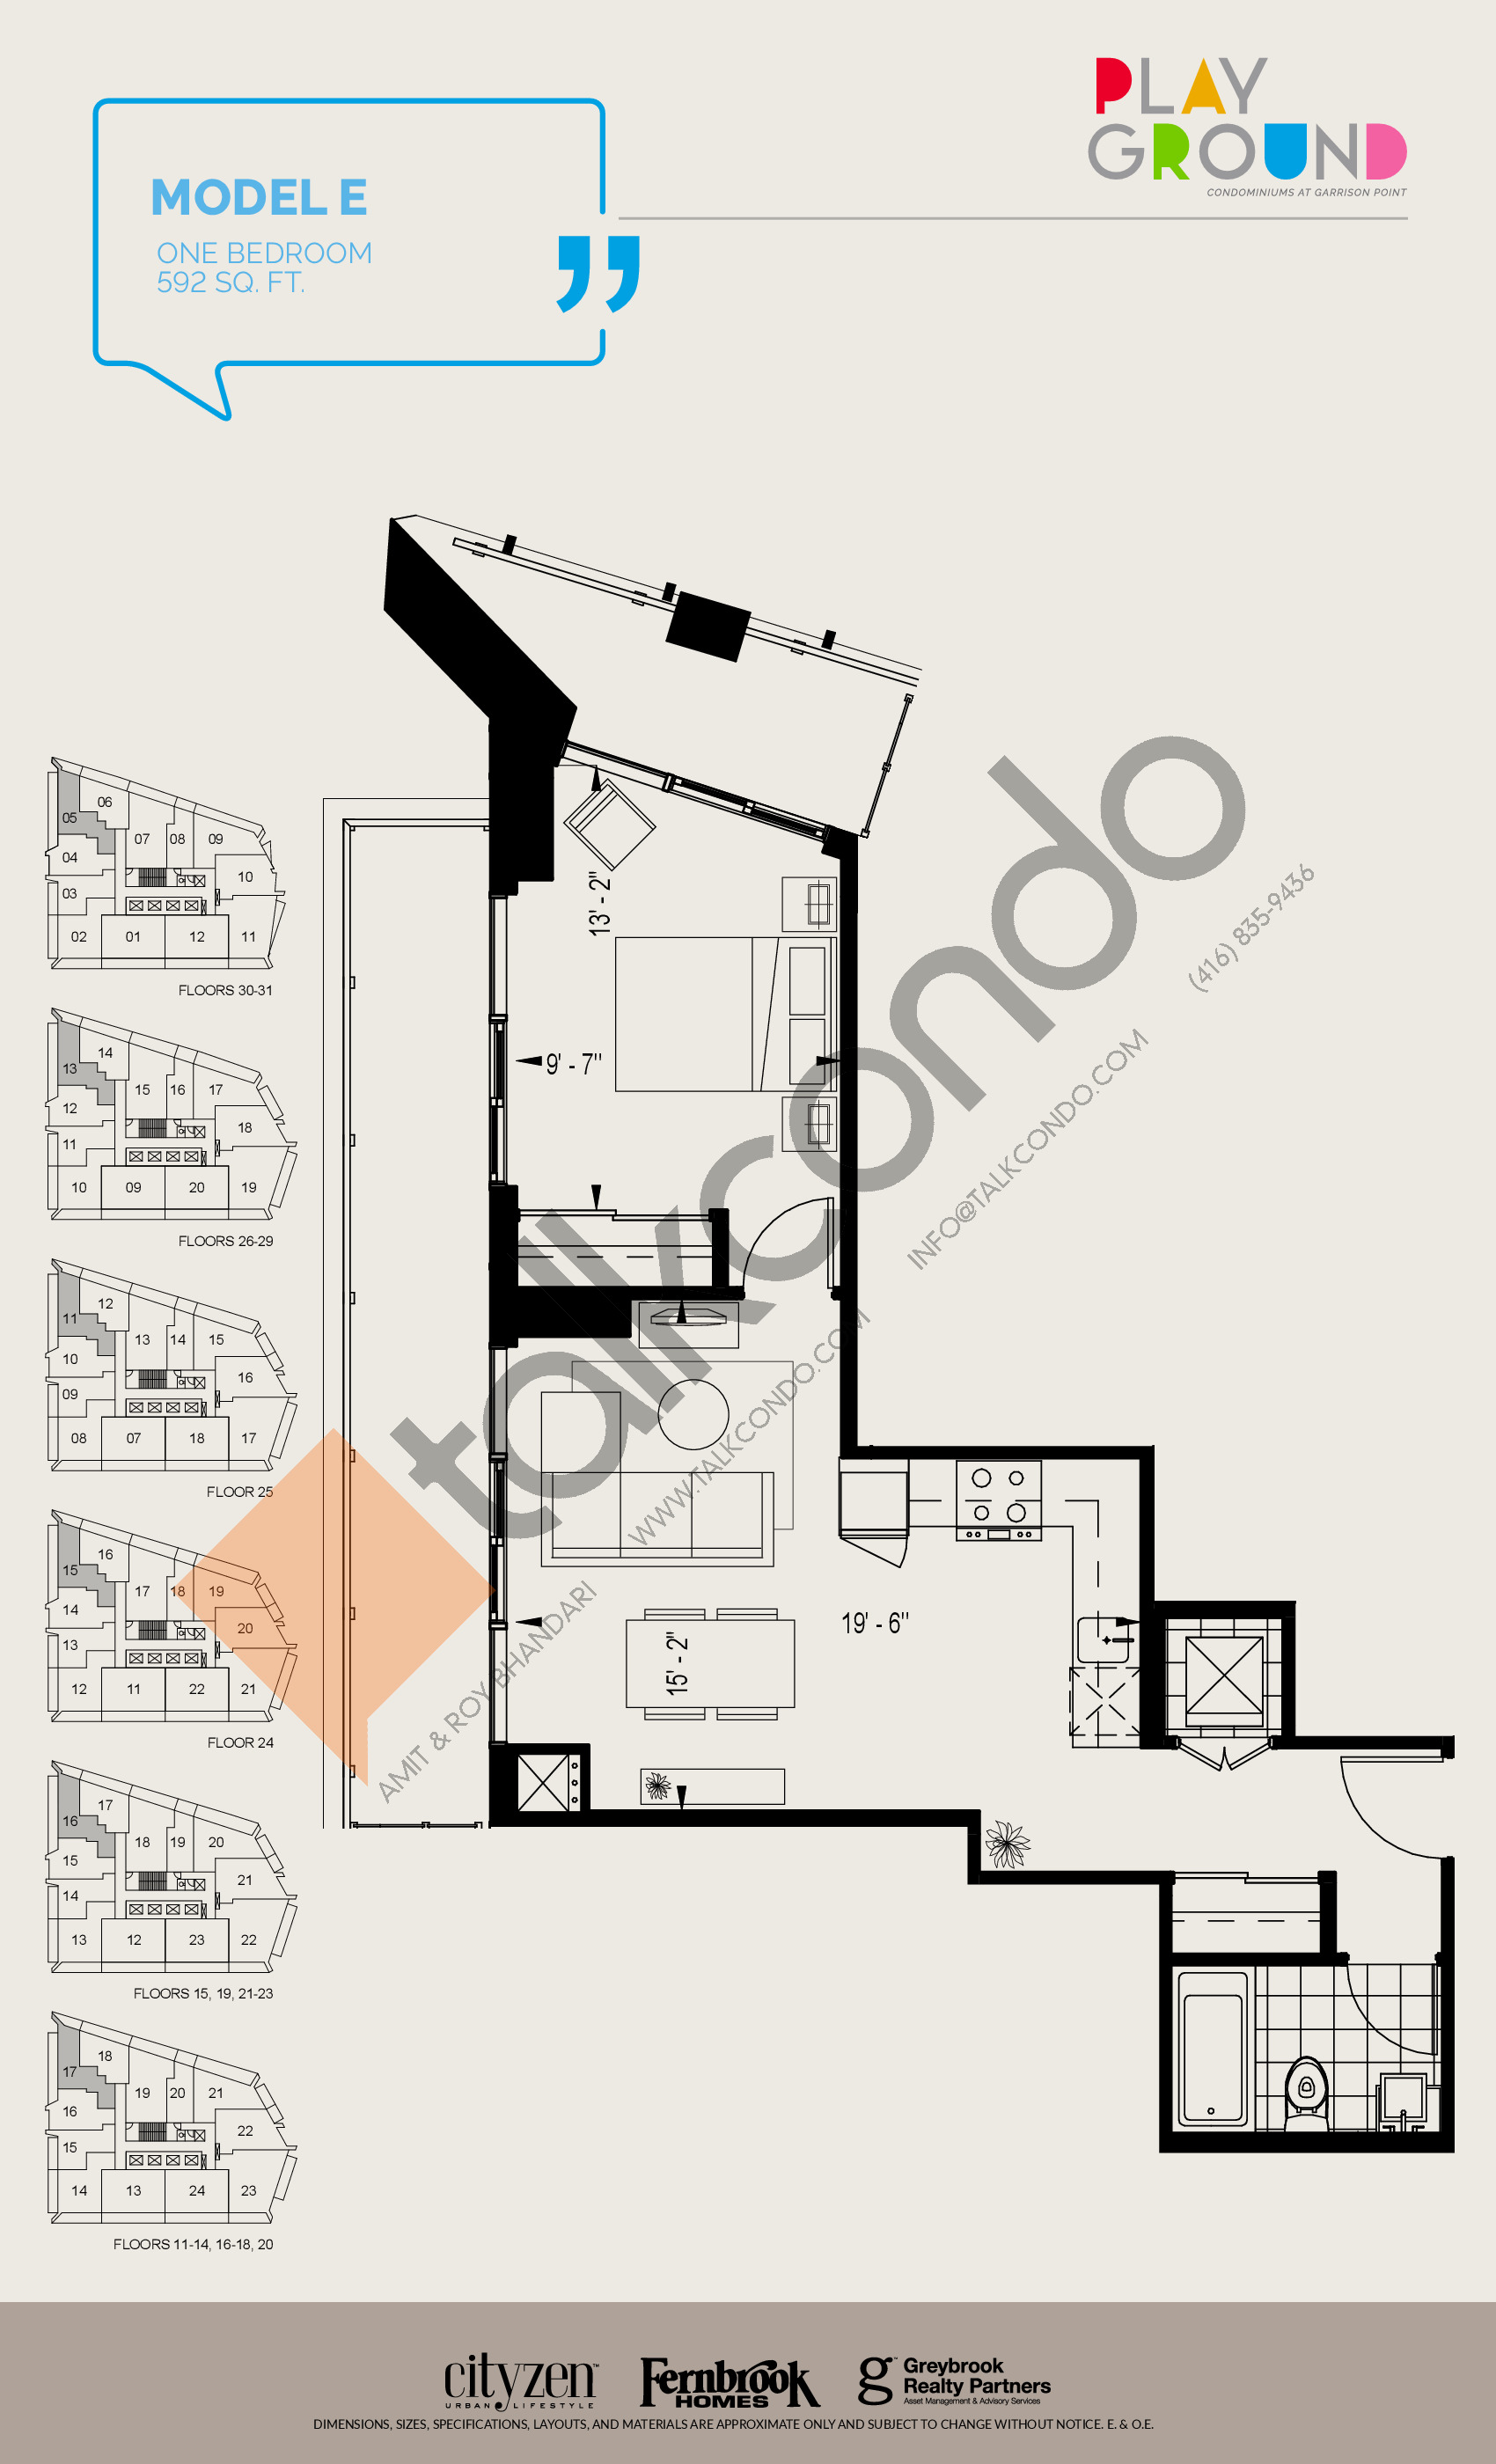 Model E Floor Plan at Playground Condos at Garrison Point - 592 sq.ft